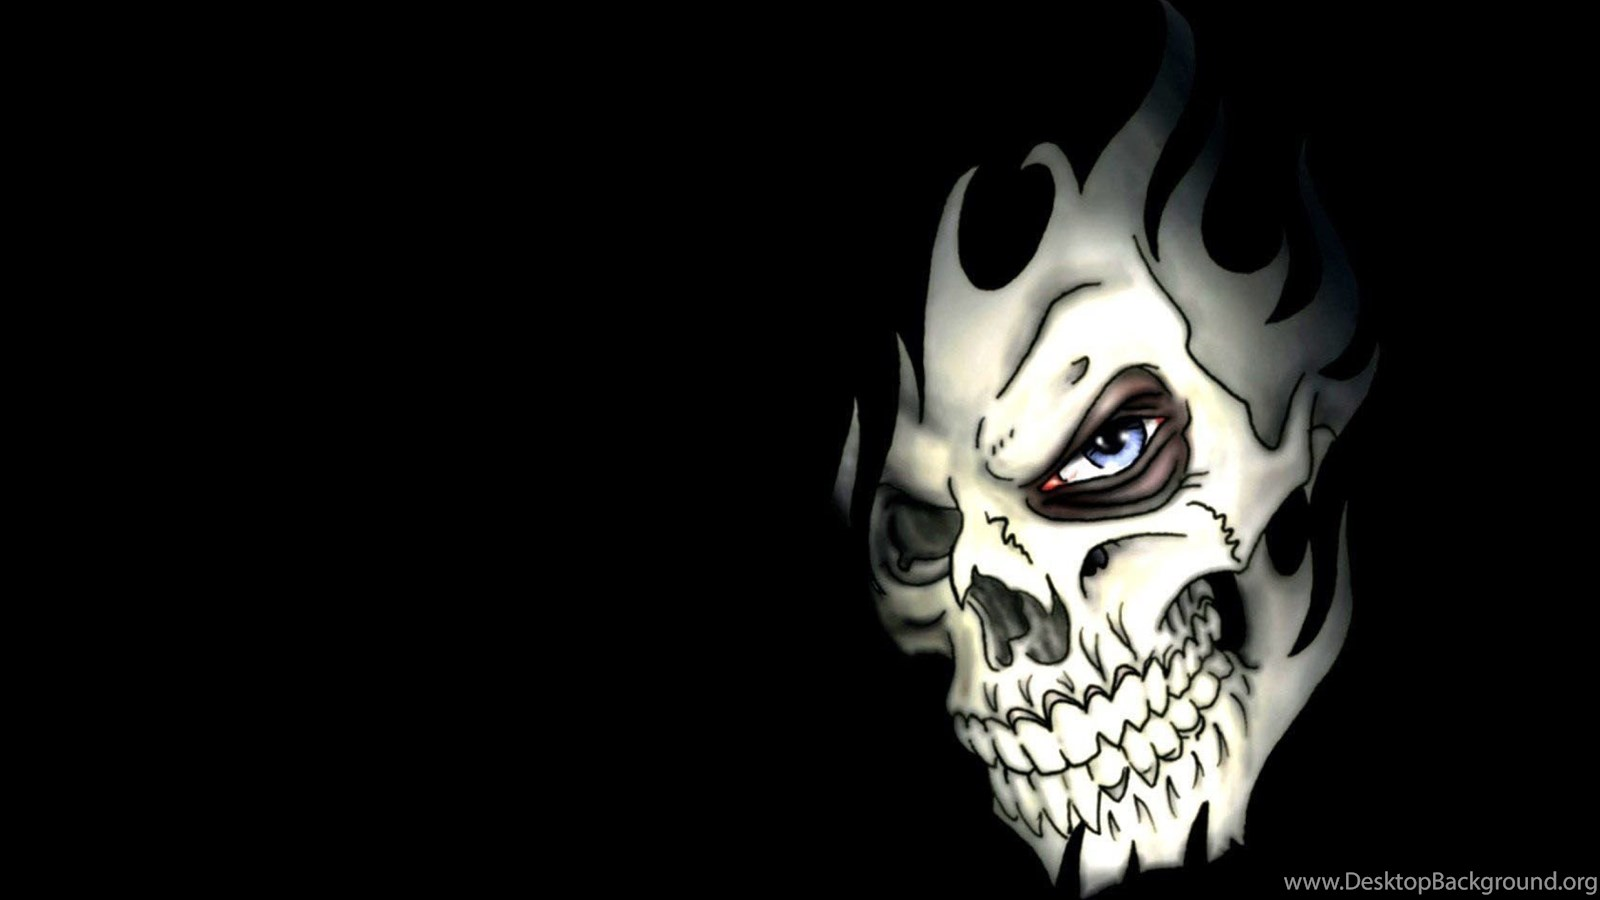 Skull Latest Hd Wallpapers Free Download Desktop Background